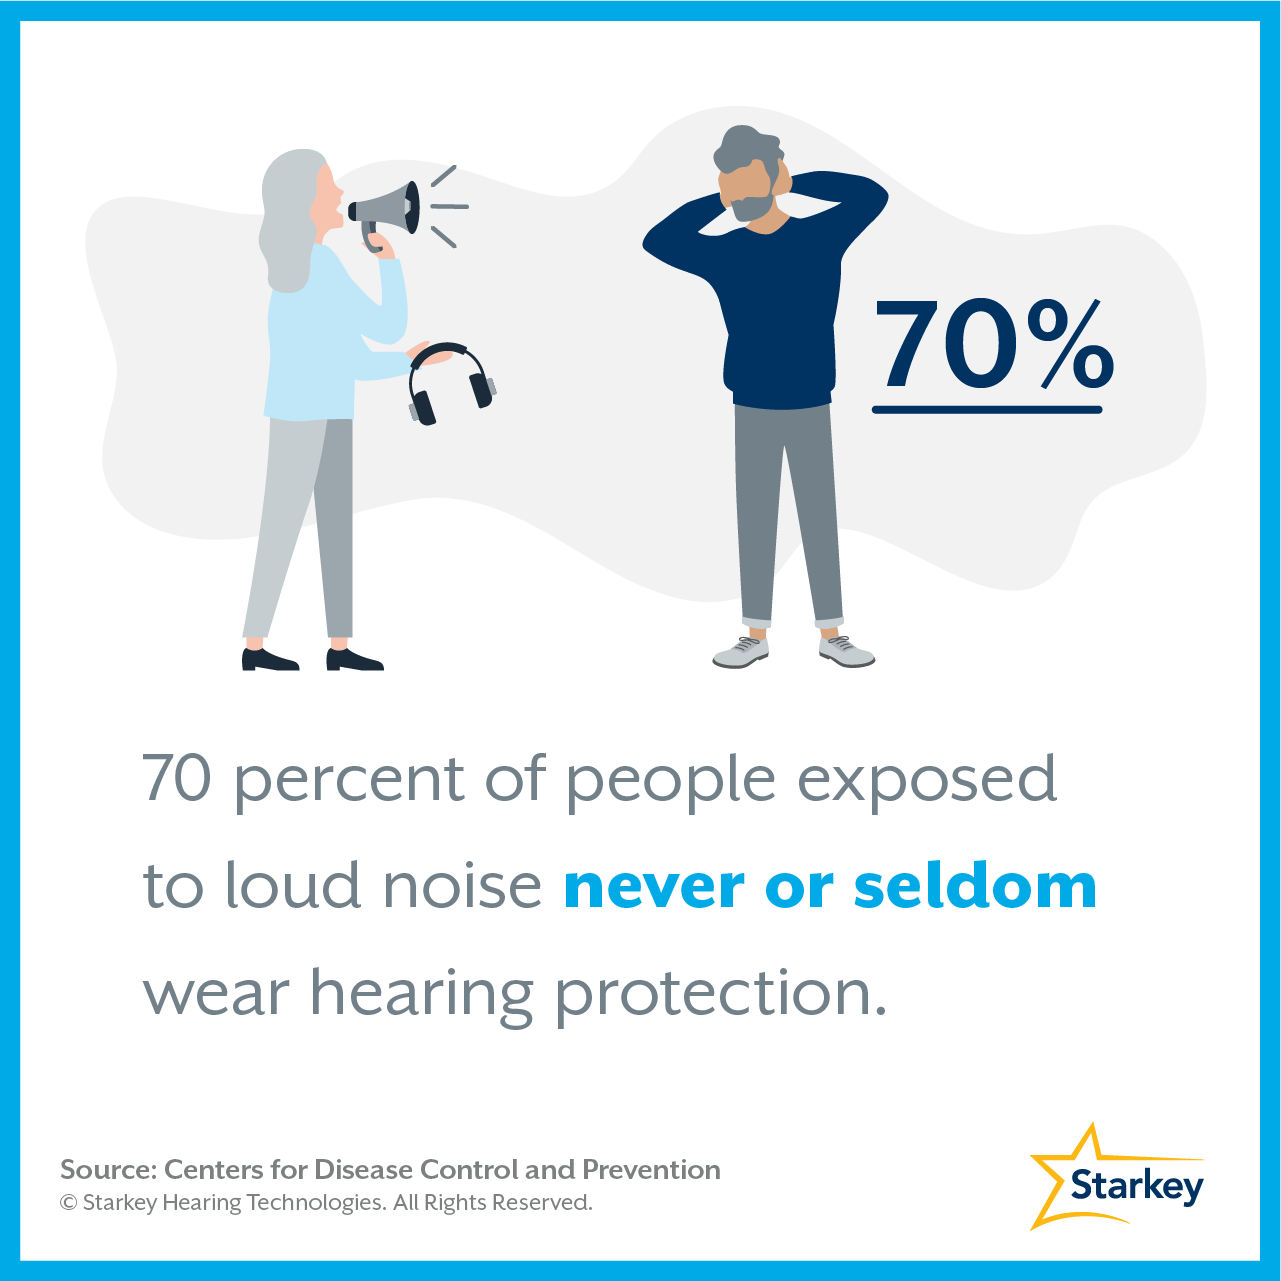 Causes-Seldom-wear-hearing-protection